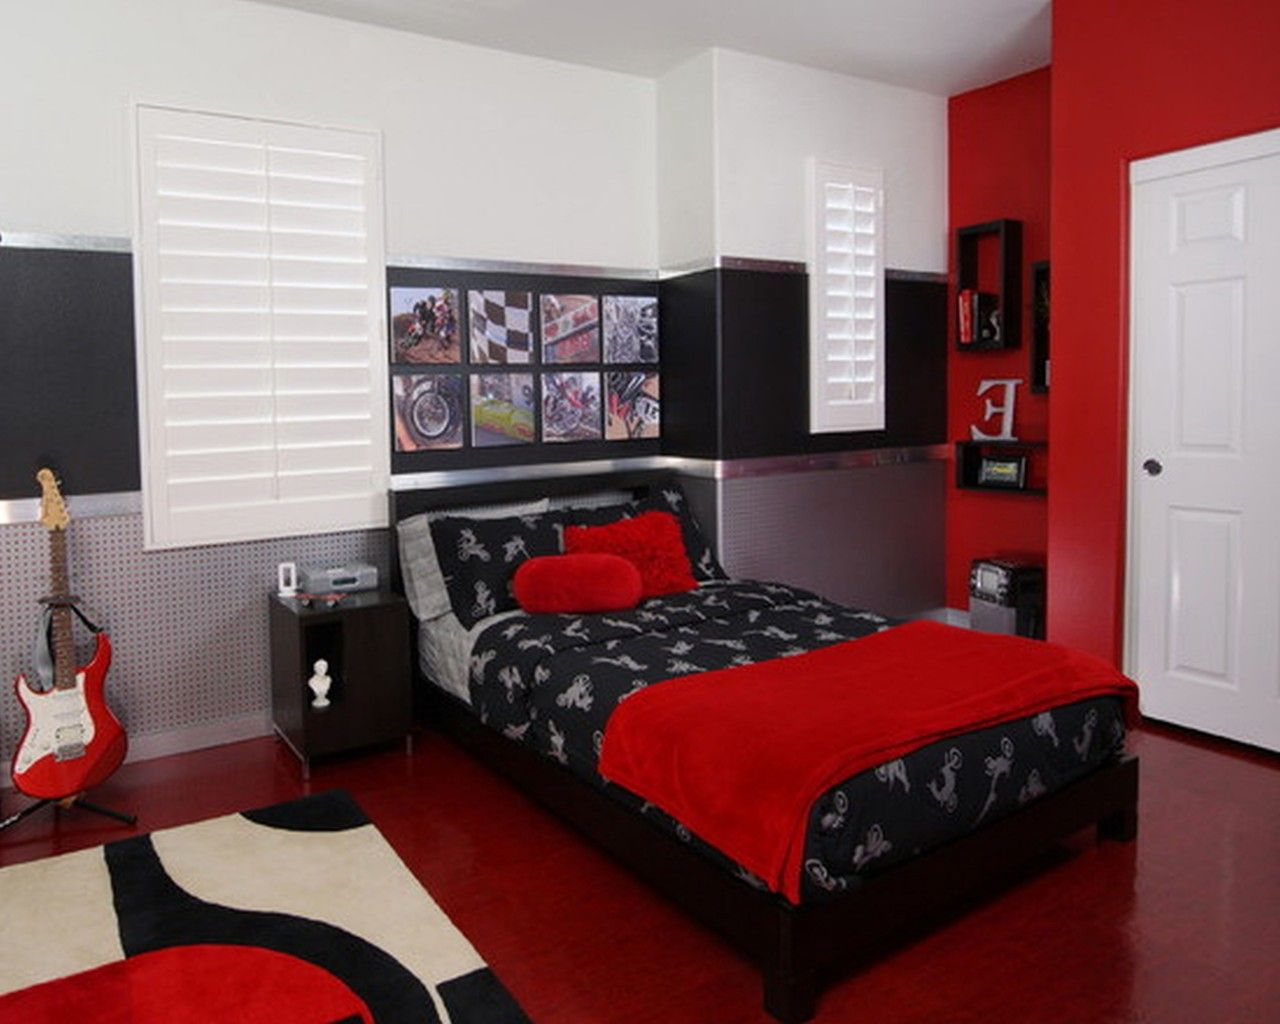 Magnificent Rooms With Red Black And White Decorating Ideas: Teenageru0027s  Bedroom With Dark Red Floor Square Rug And The Bed Is Black With Red  Blanket And ...